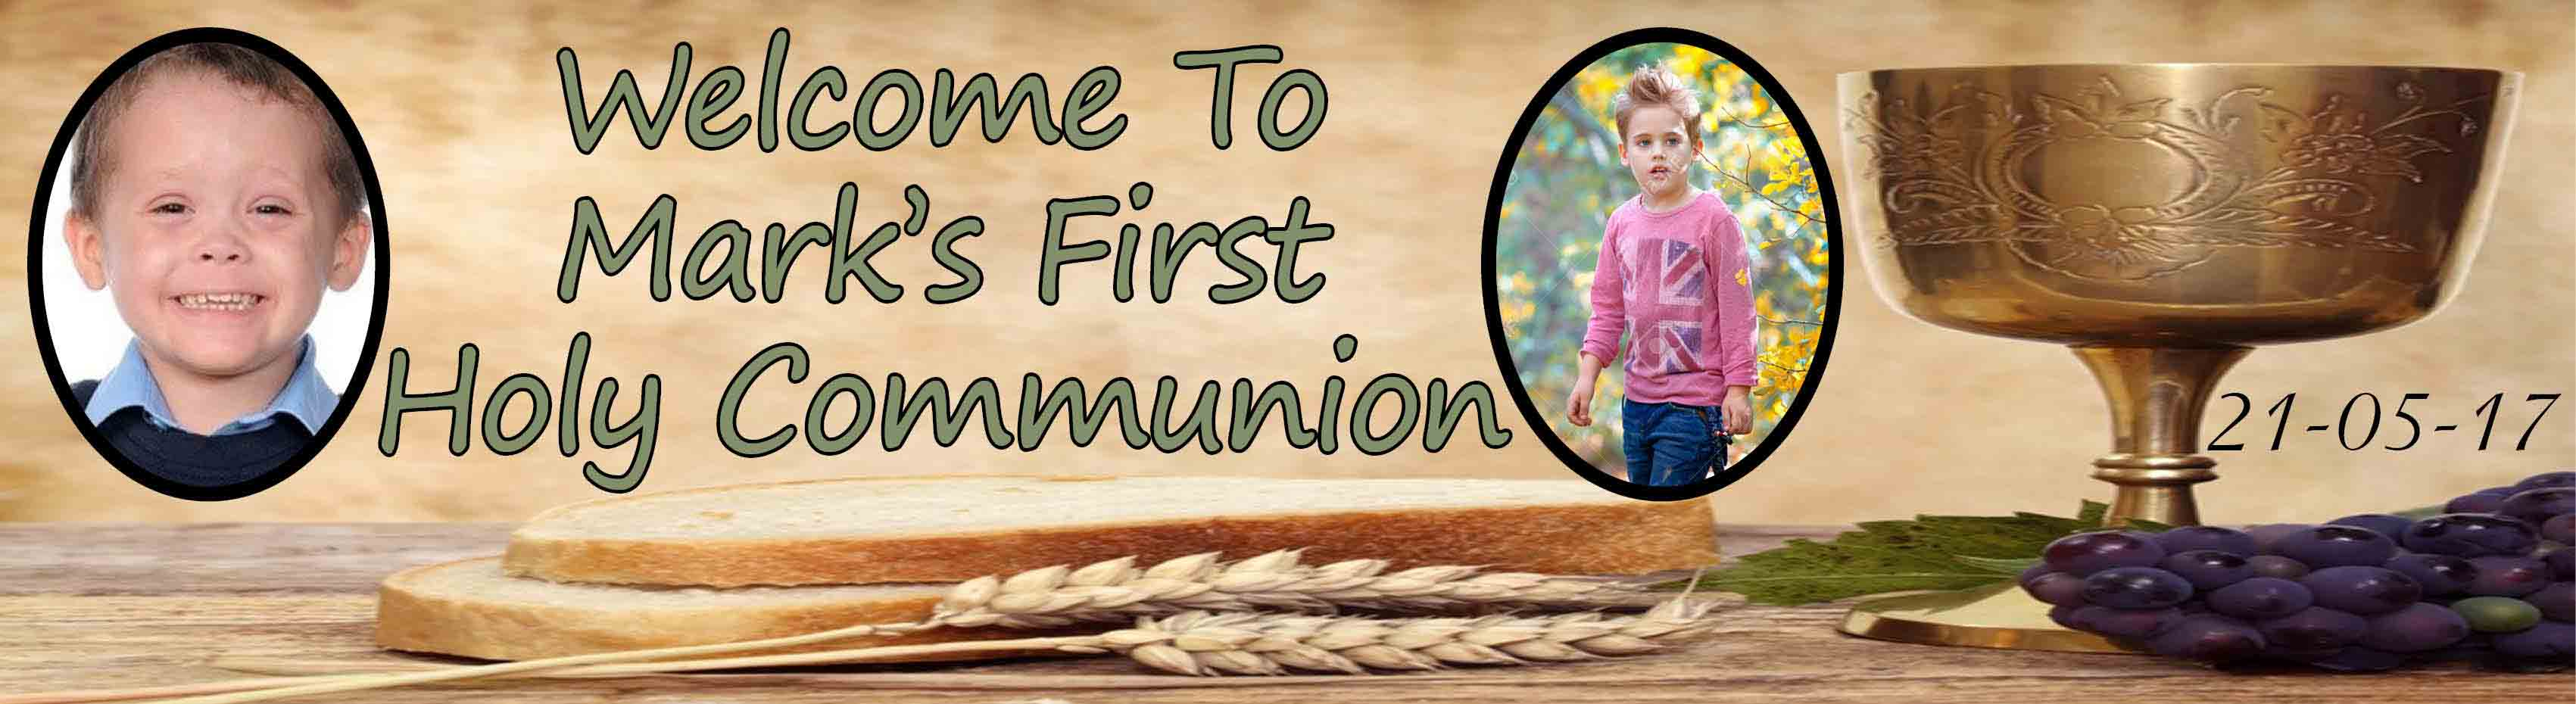 1st Holy Communion Banner 8